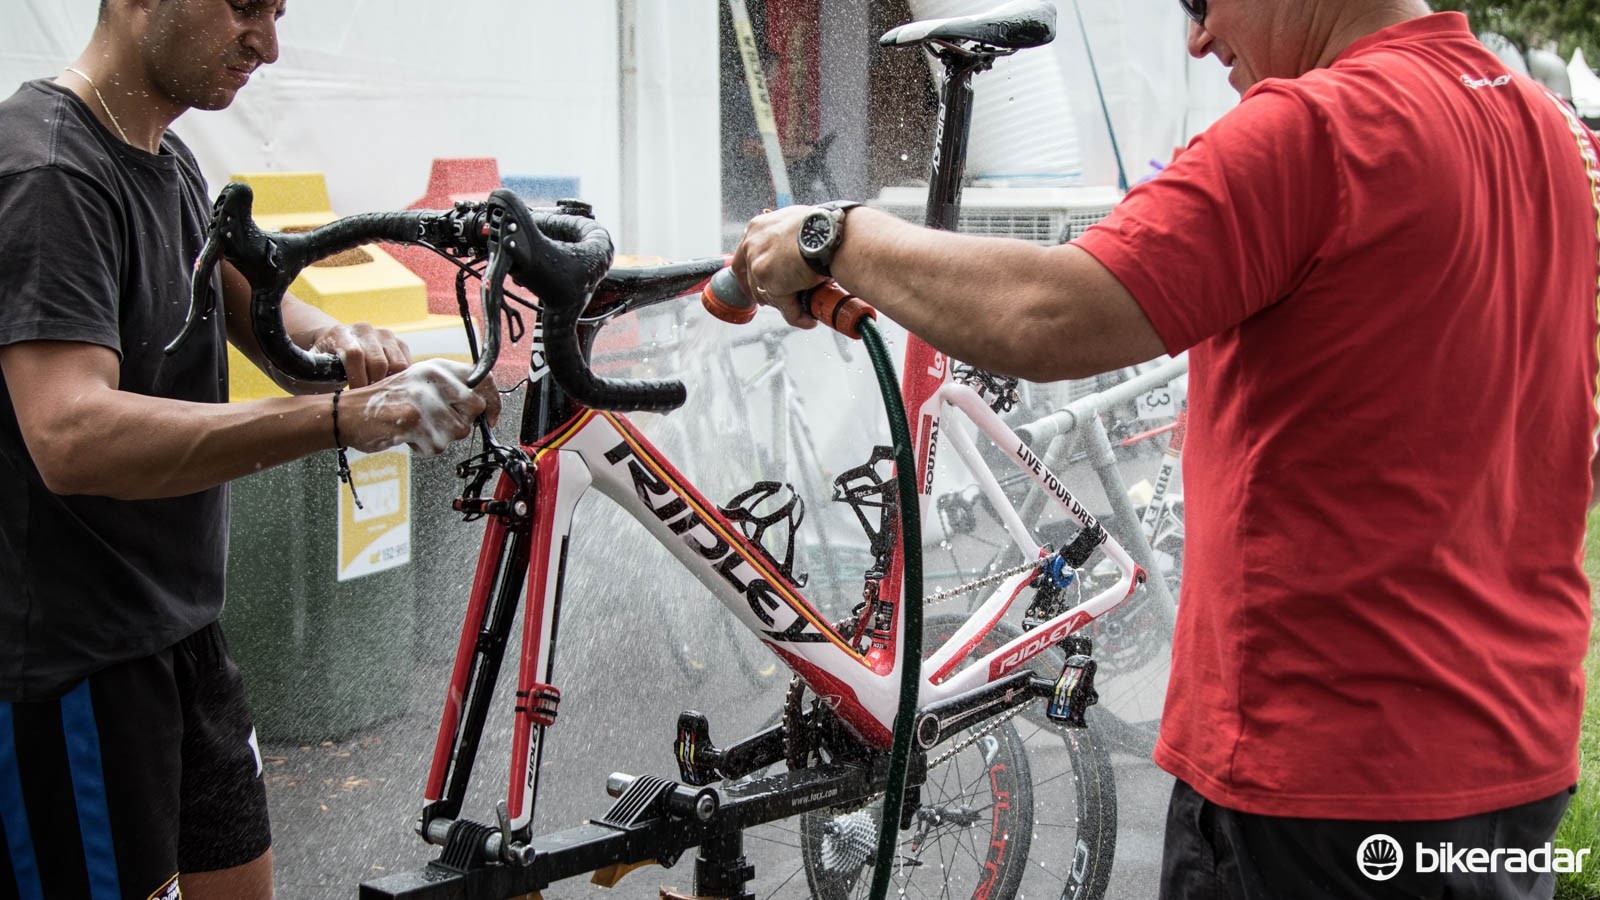 We go behind the scenes at the Tour Down Under - the WorldTour's first race of the season